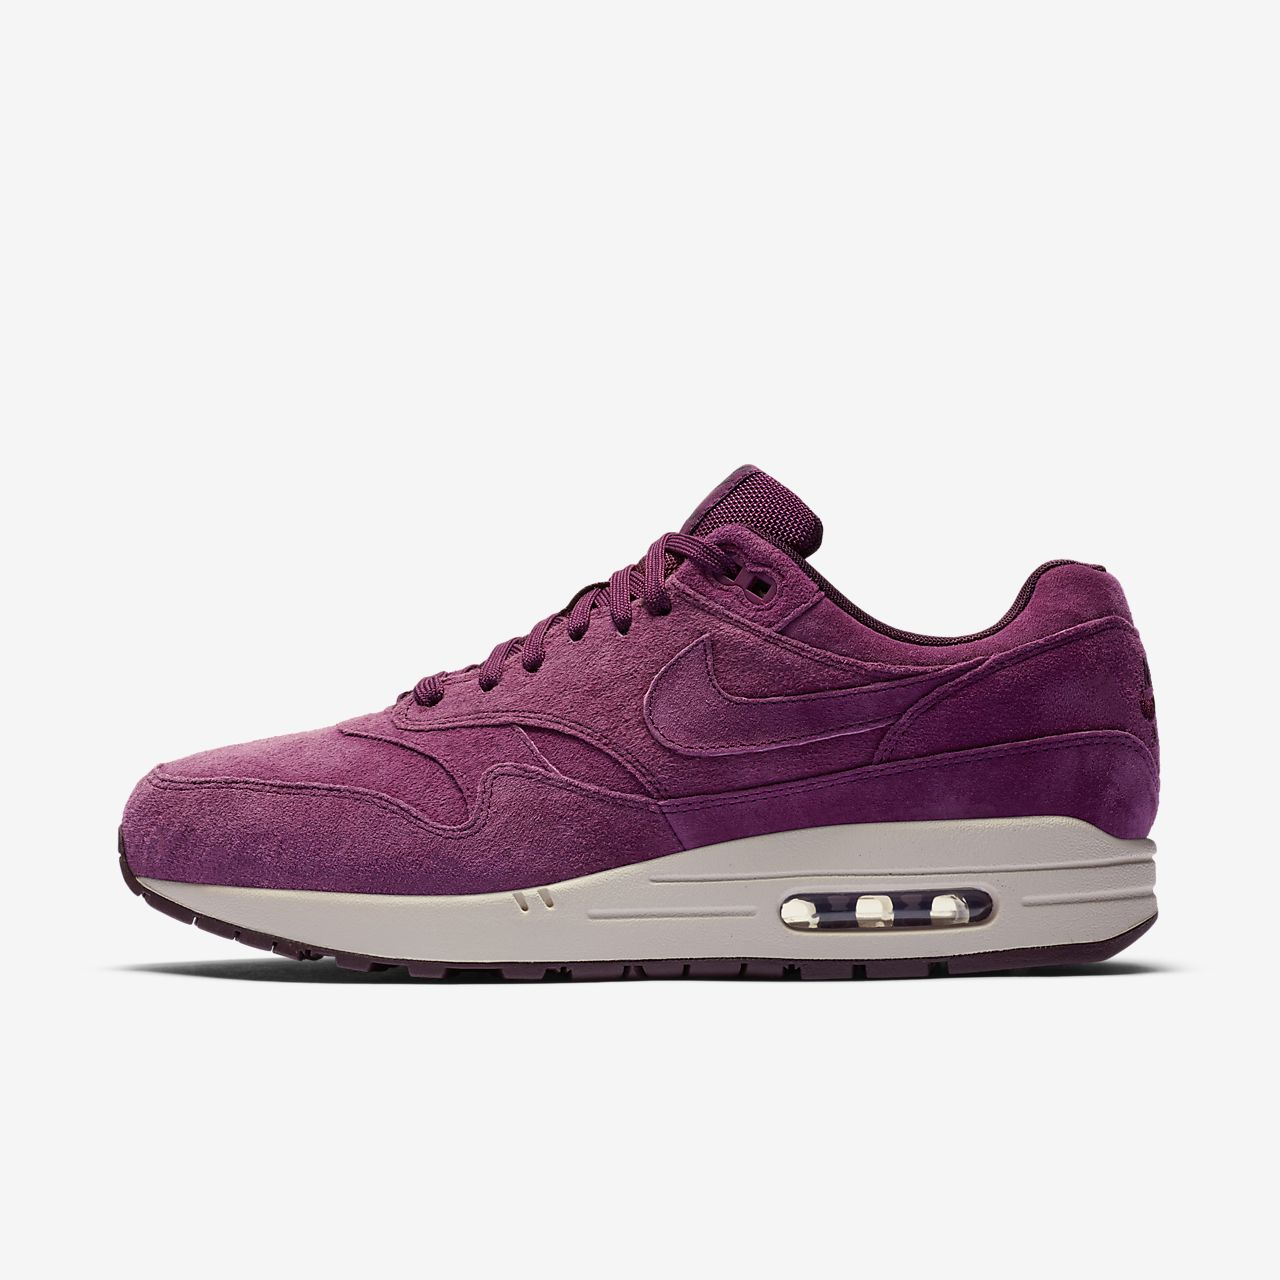 lowest price 6158e 73491 Nike Air Max 1 Premium